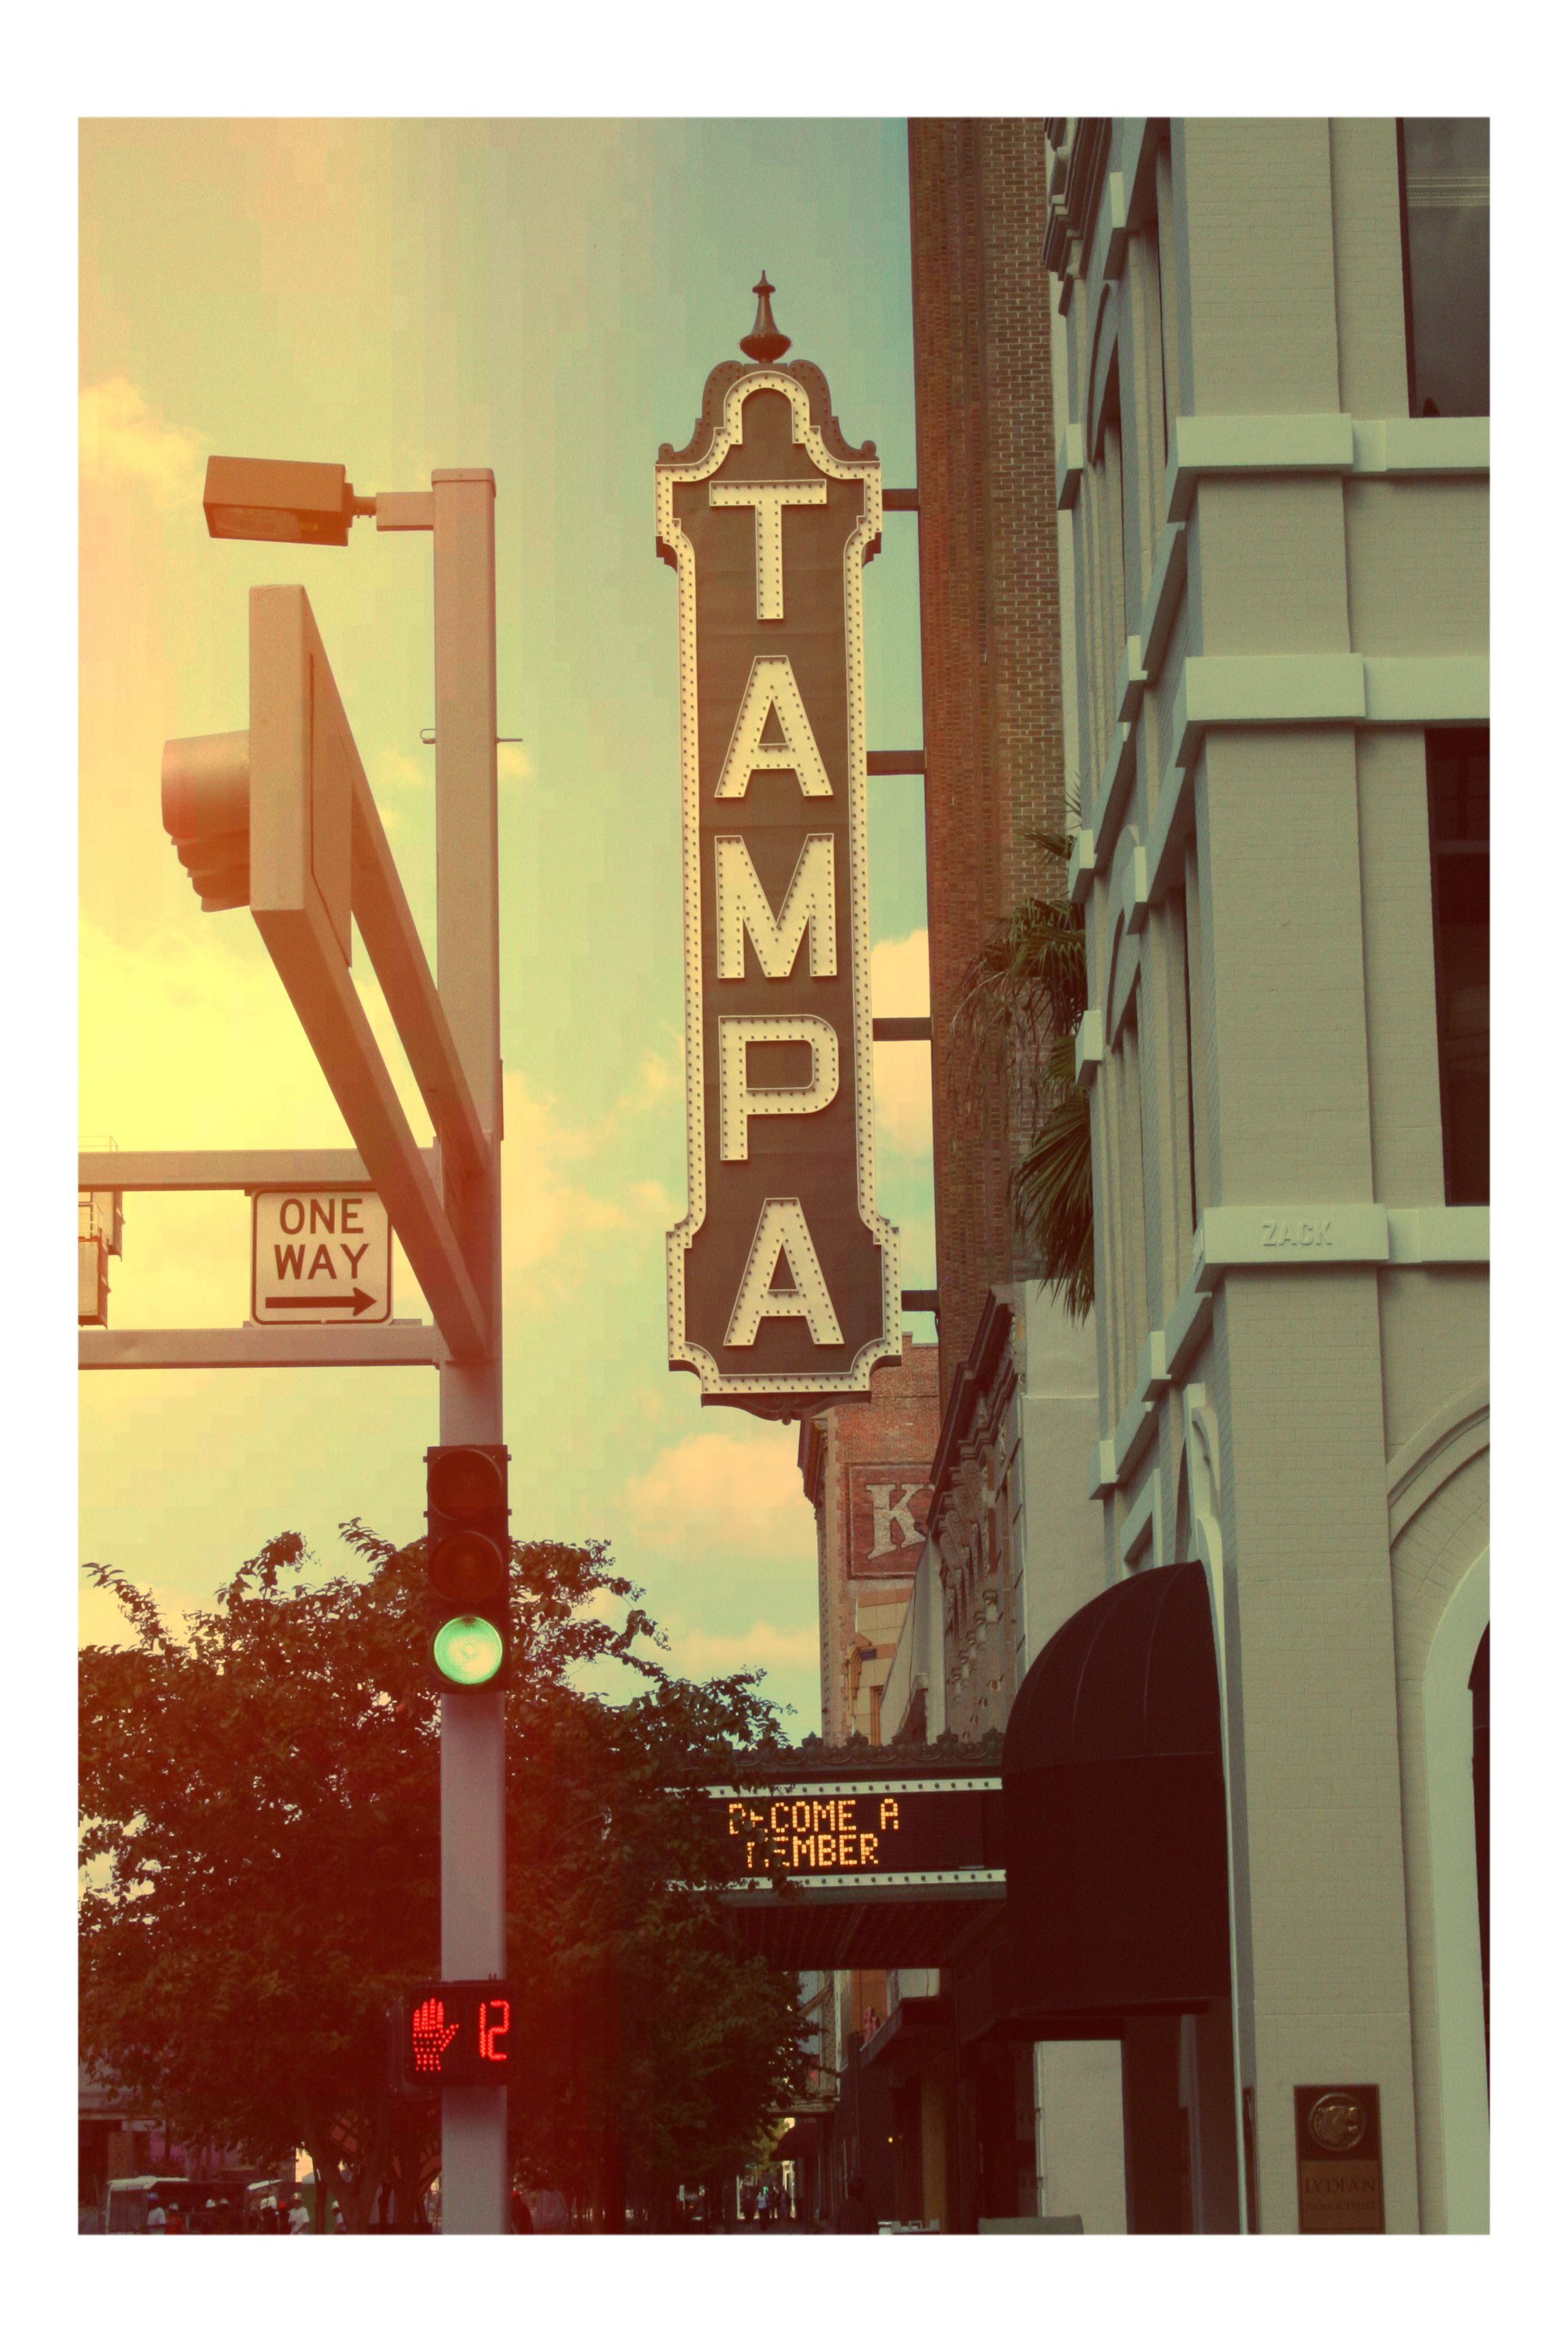 The iconic Tampa Theater sign.